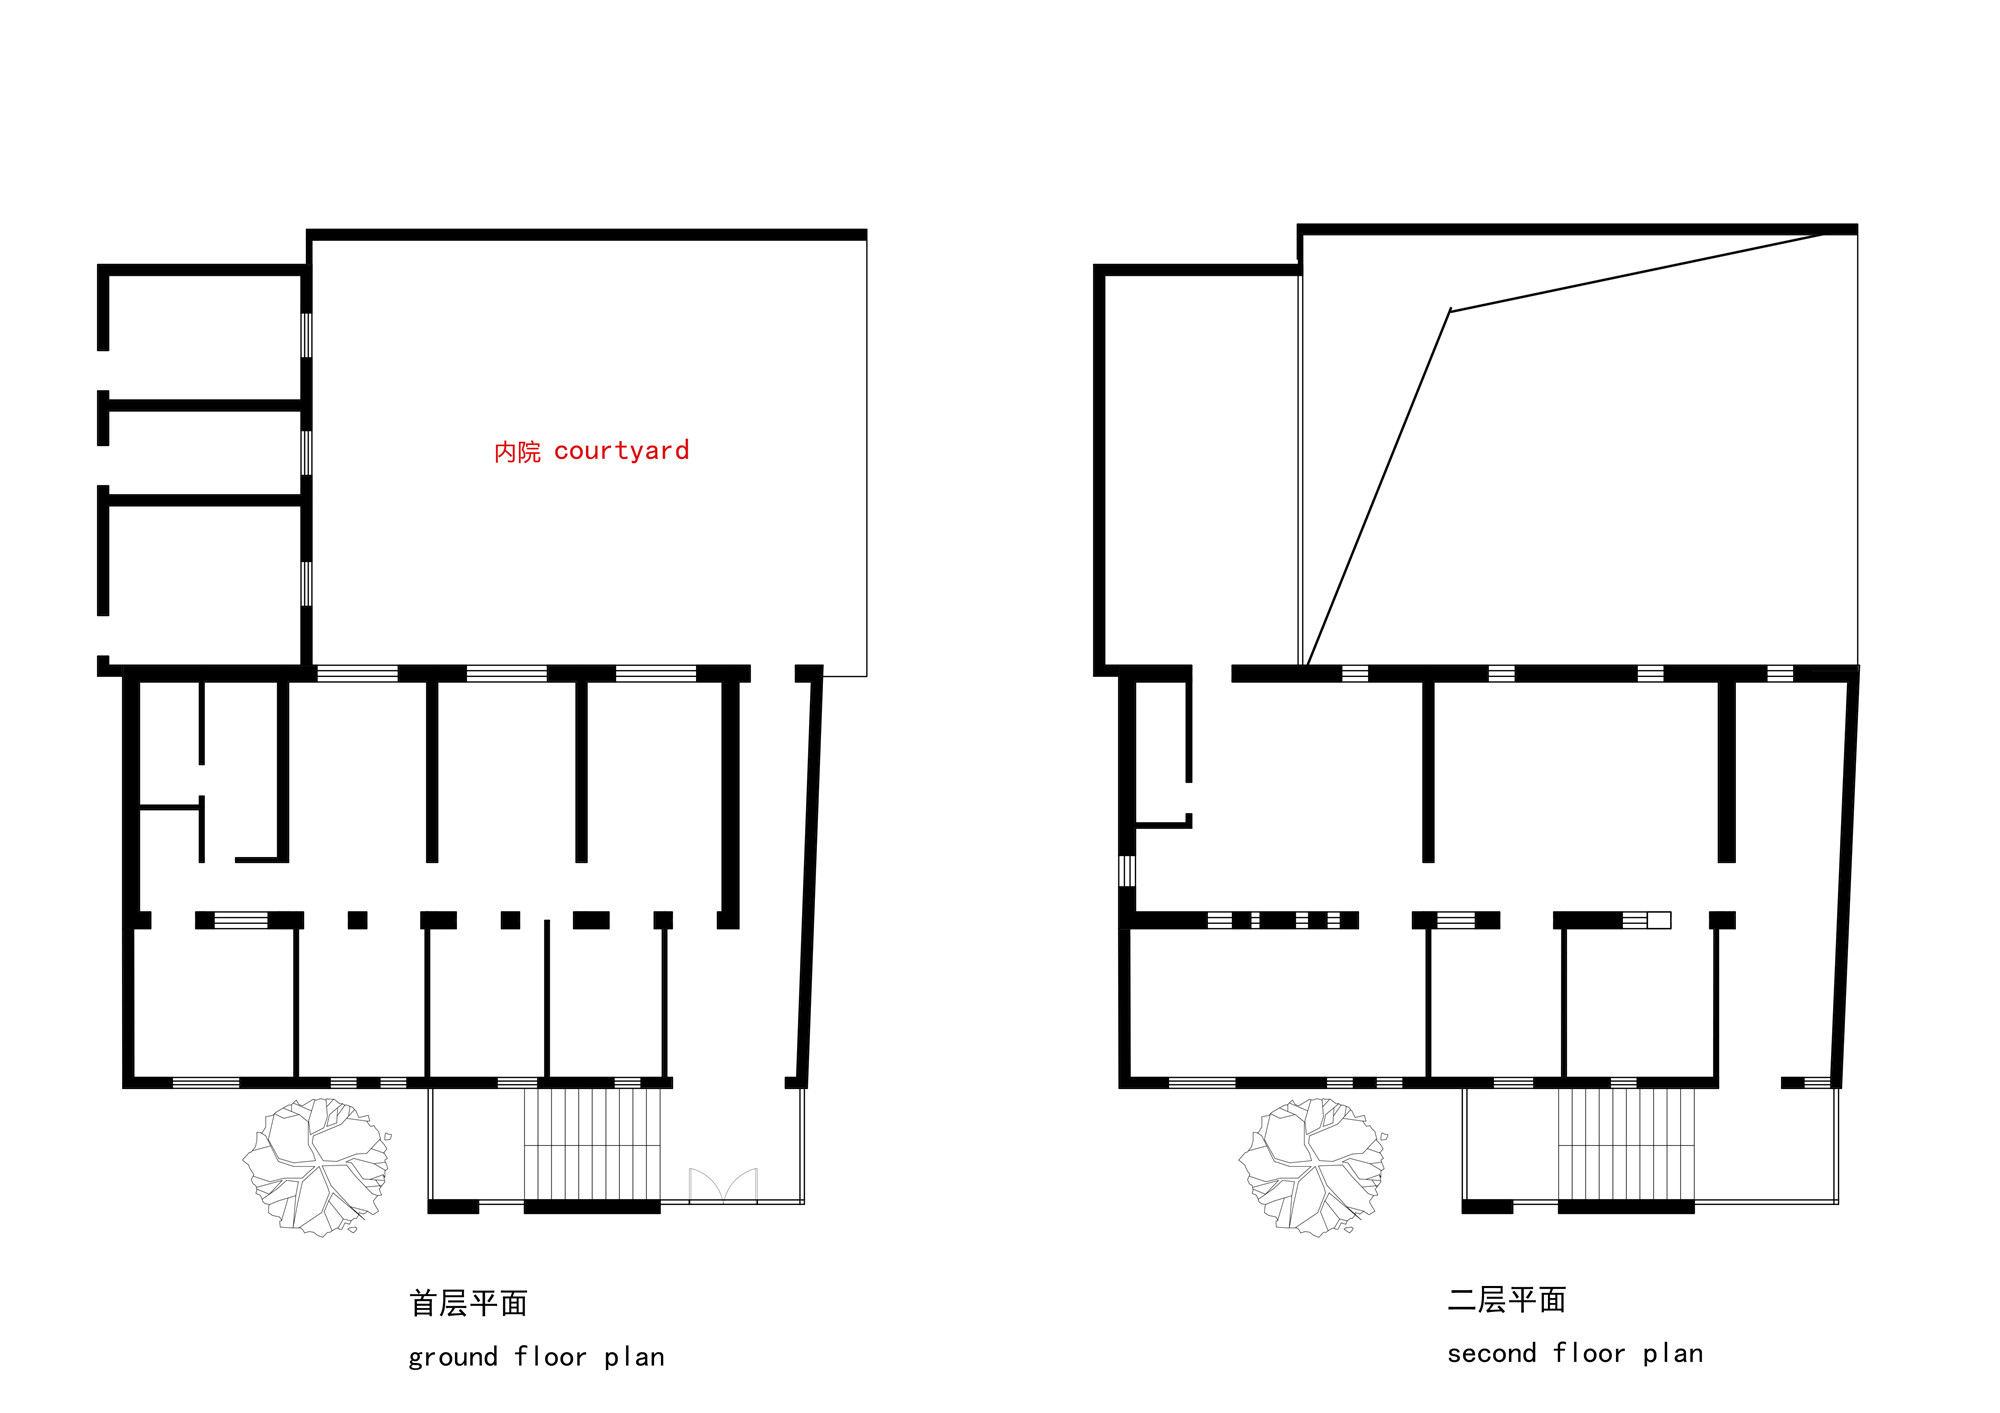 plans before renovation